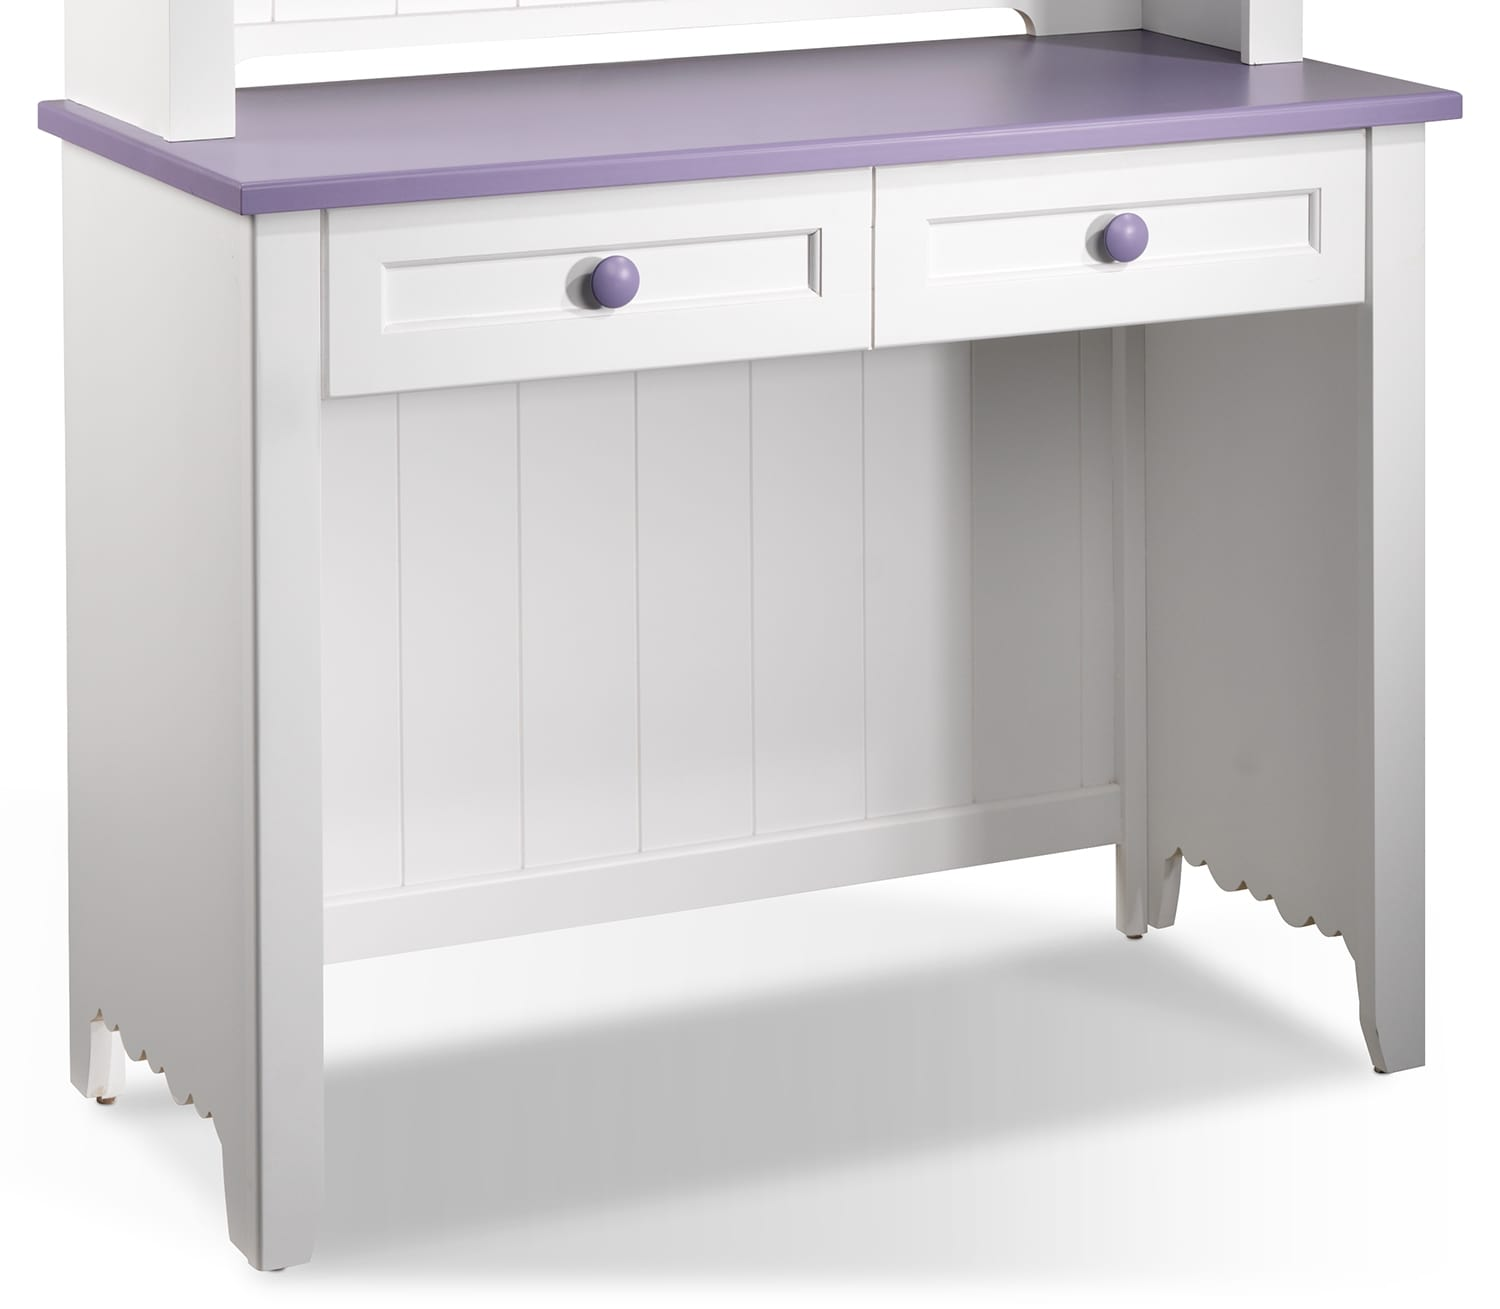 Sweetdreams Desk - White, Lavender